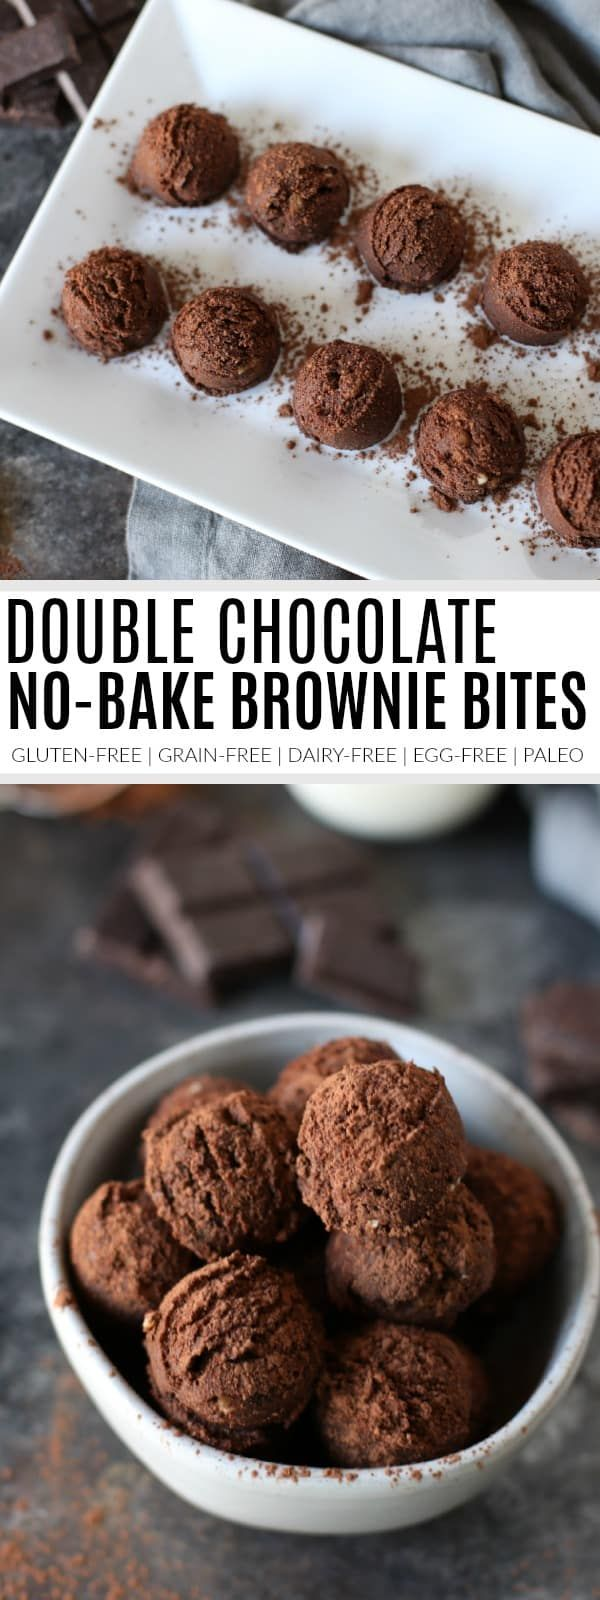 Craving brownies but have no time (or patience!) to wait? Try these Double Chocolate No-Bake Brownie Bites. Ready in less than 15 minutes and packed with antioxidants, healthy fats and collagen peptides to support skin and joint health. Makes 20-24 servings.